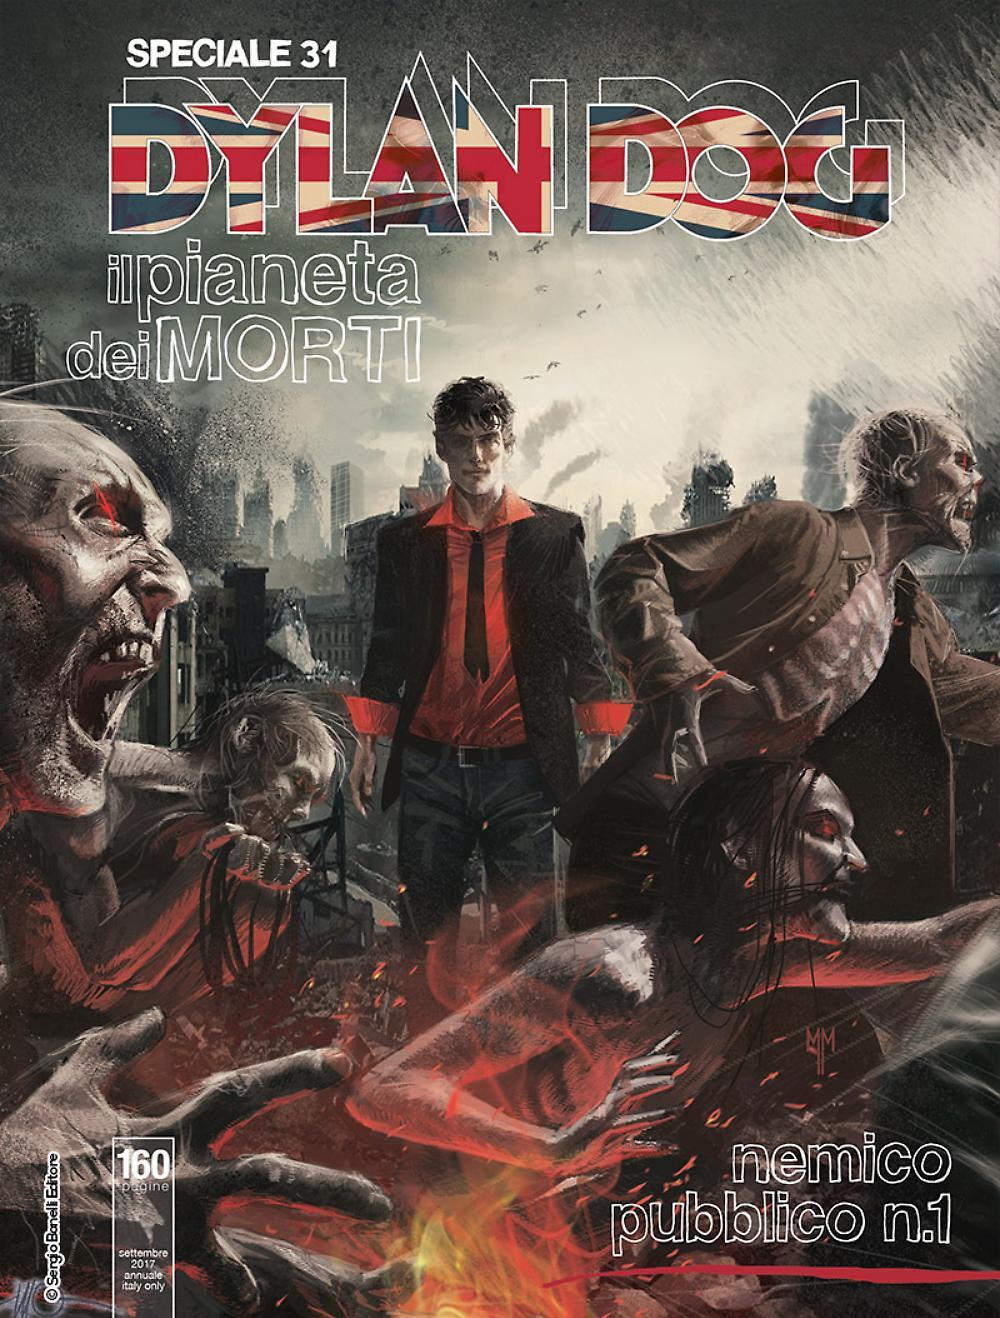 Speciale Dylan Dog31